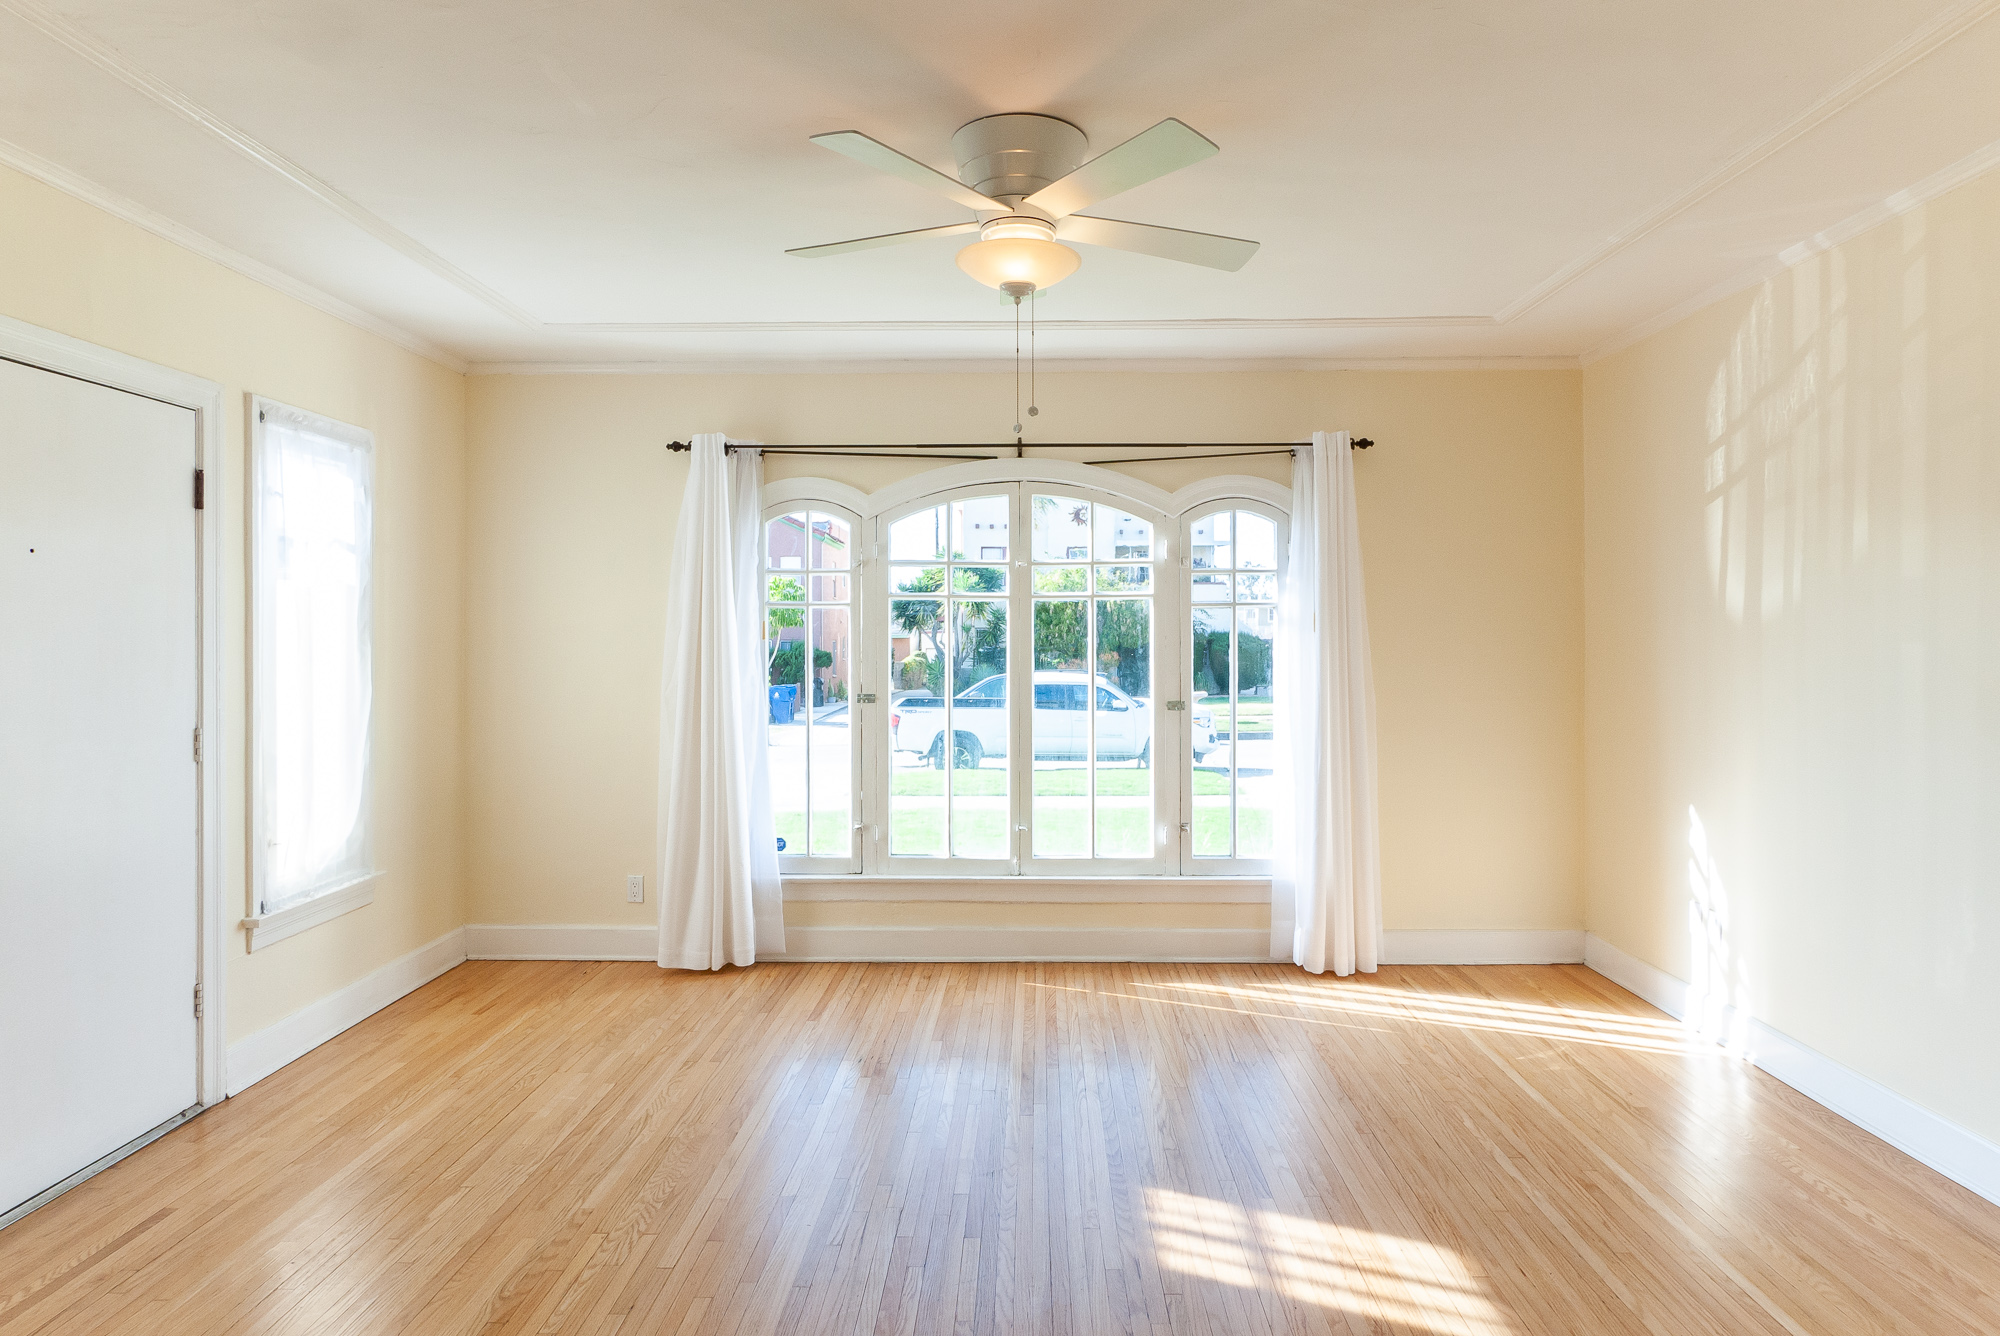 Private, Quiet, Sunny & Big! 2BD/1.5BA 2 Story Townhouse | Parking for 2 | Washer & Dryer In Unit